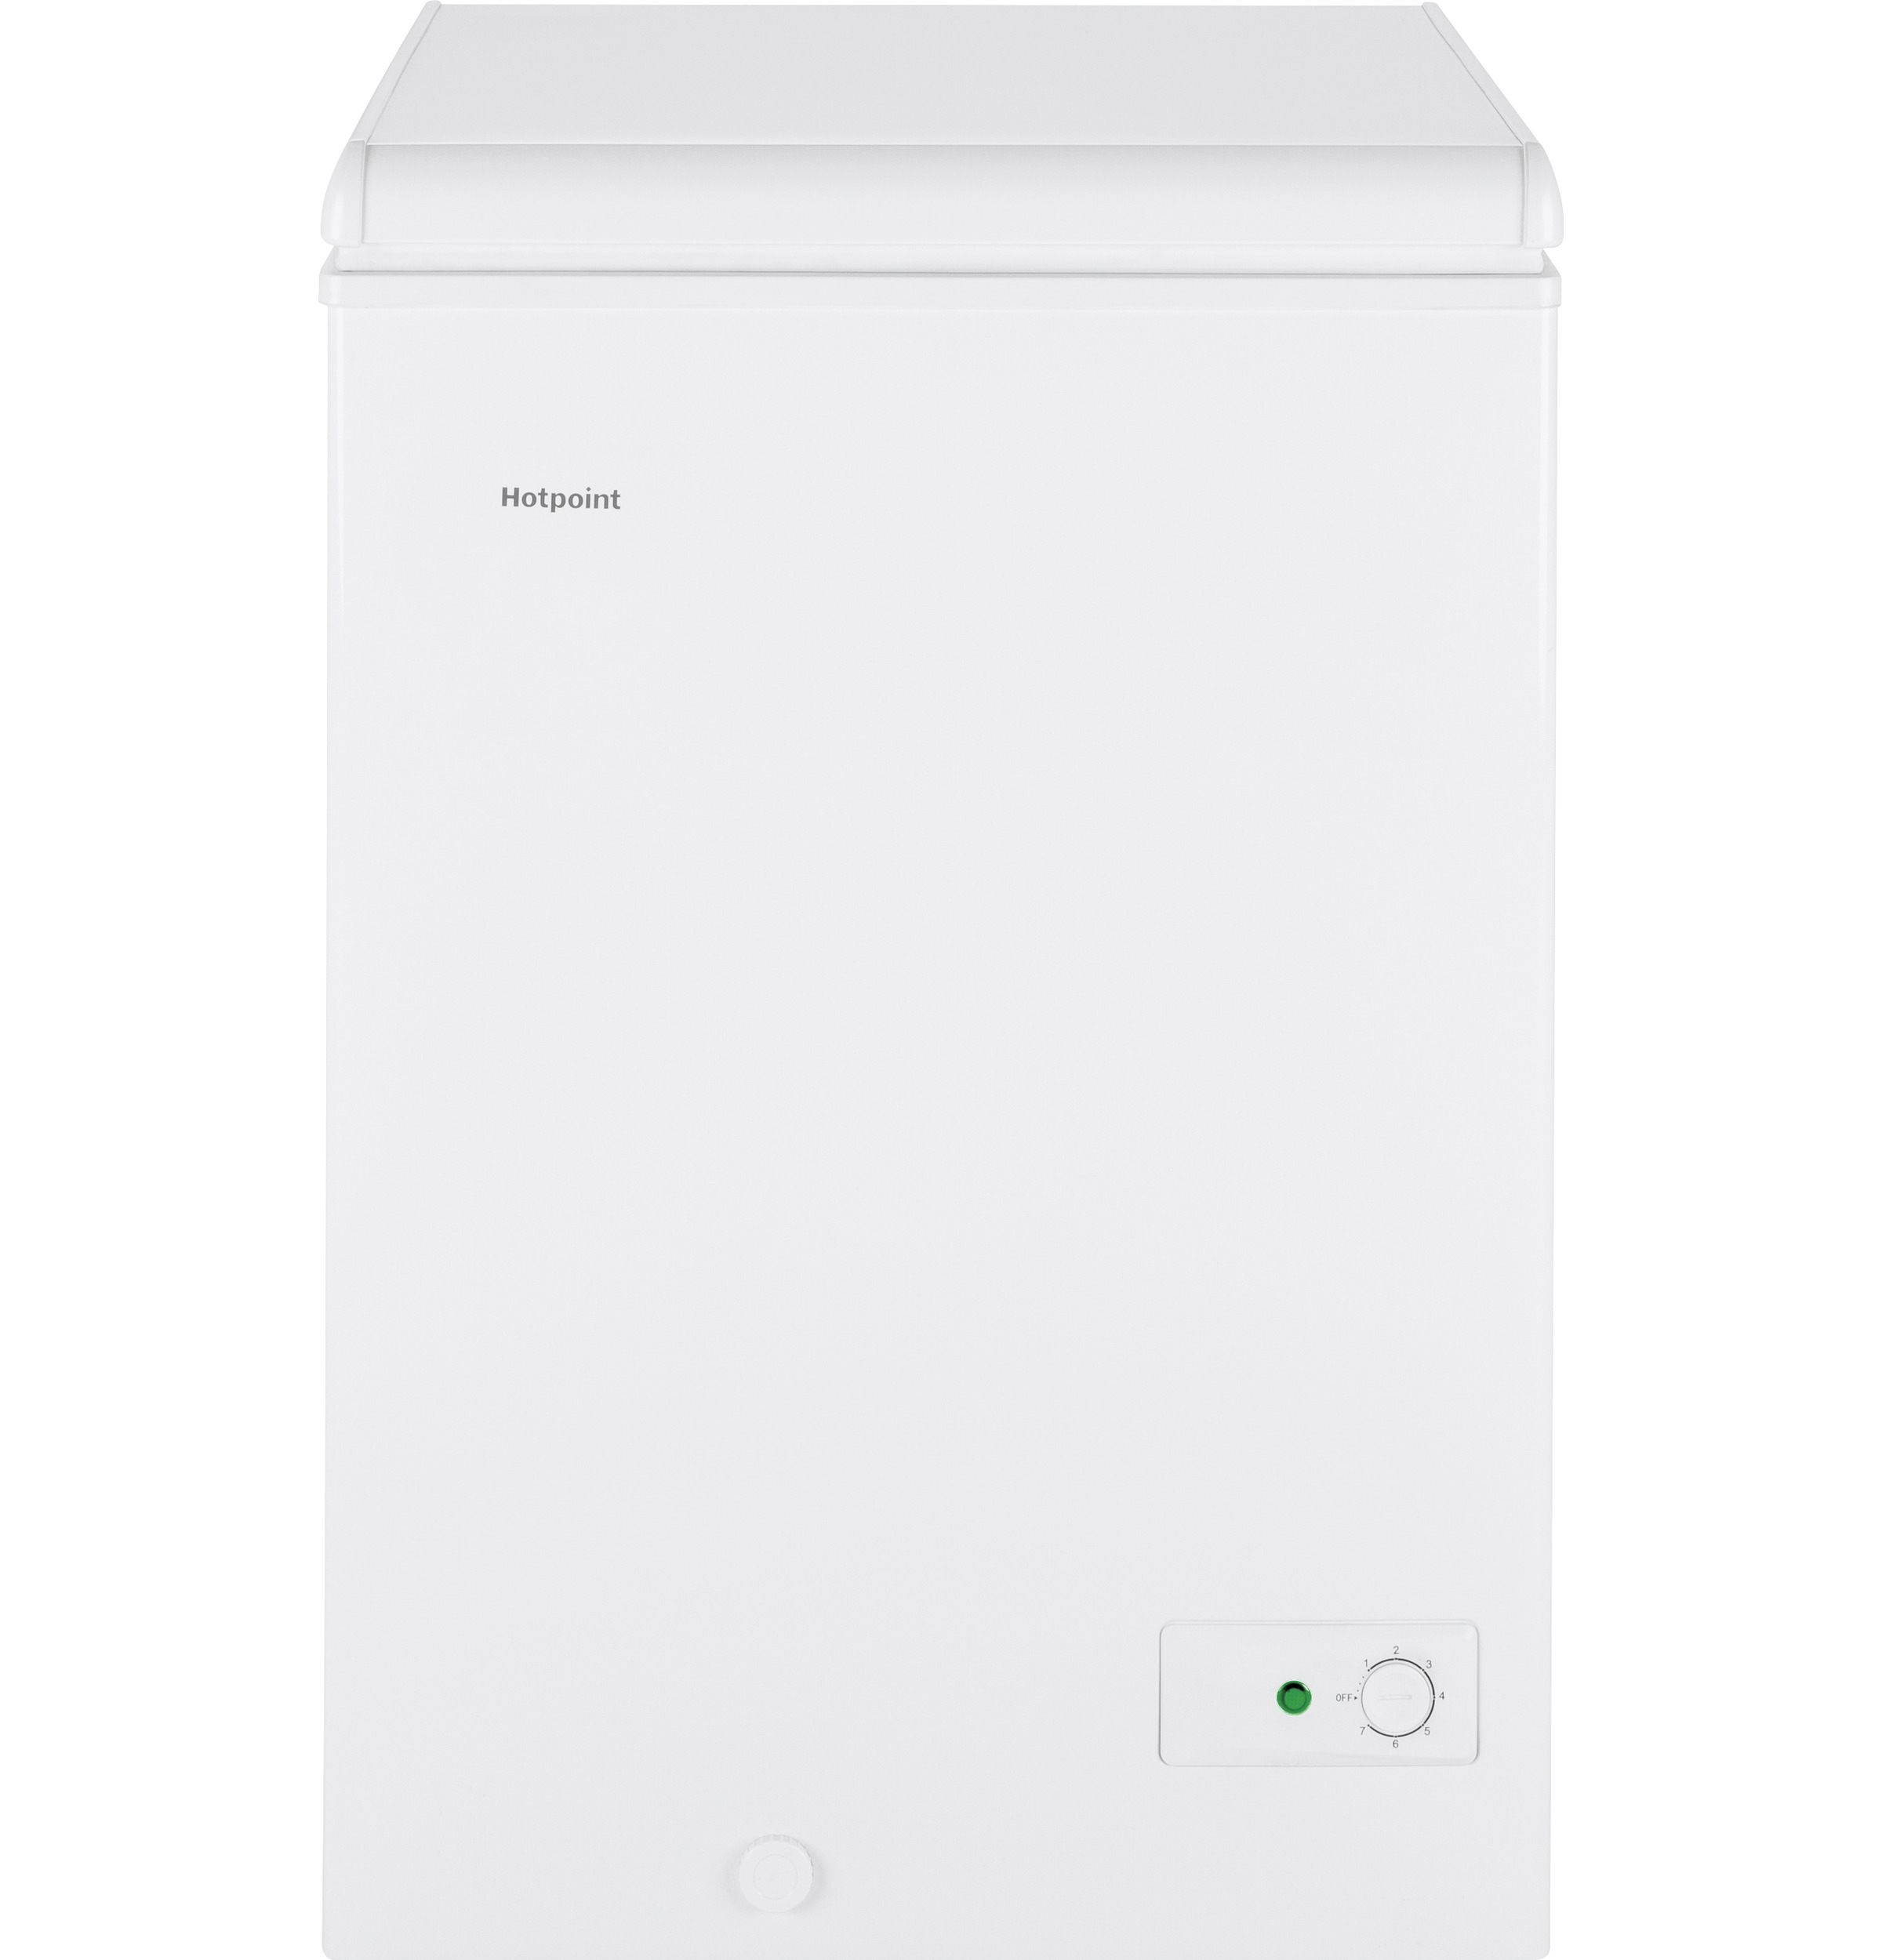 Hotpoint® 3.6 Cu. Ft. Manual Defrost Chest Freezer